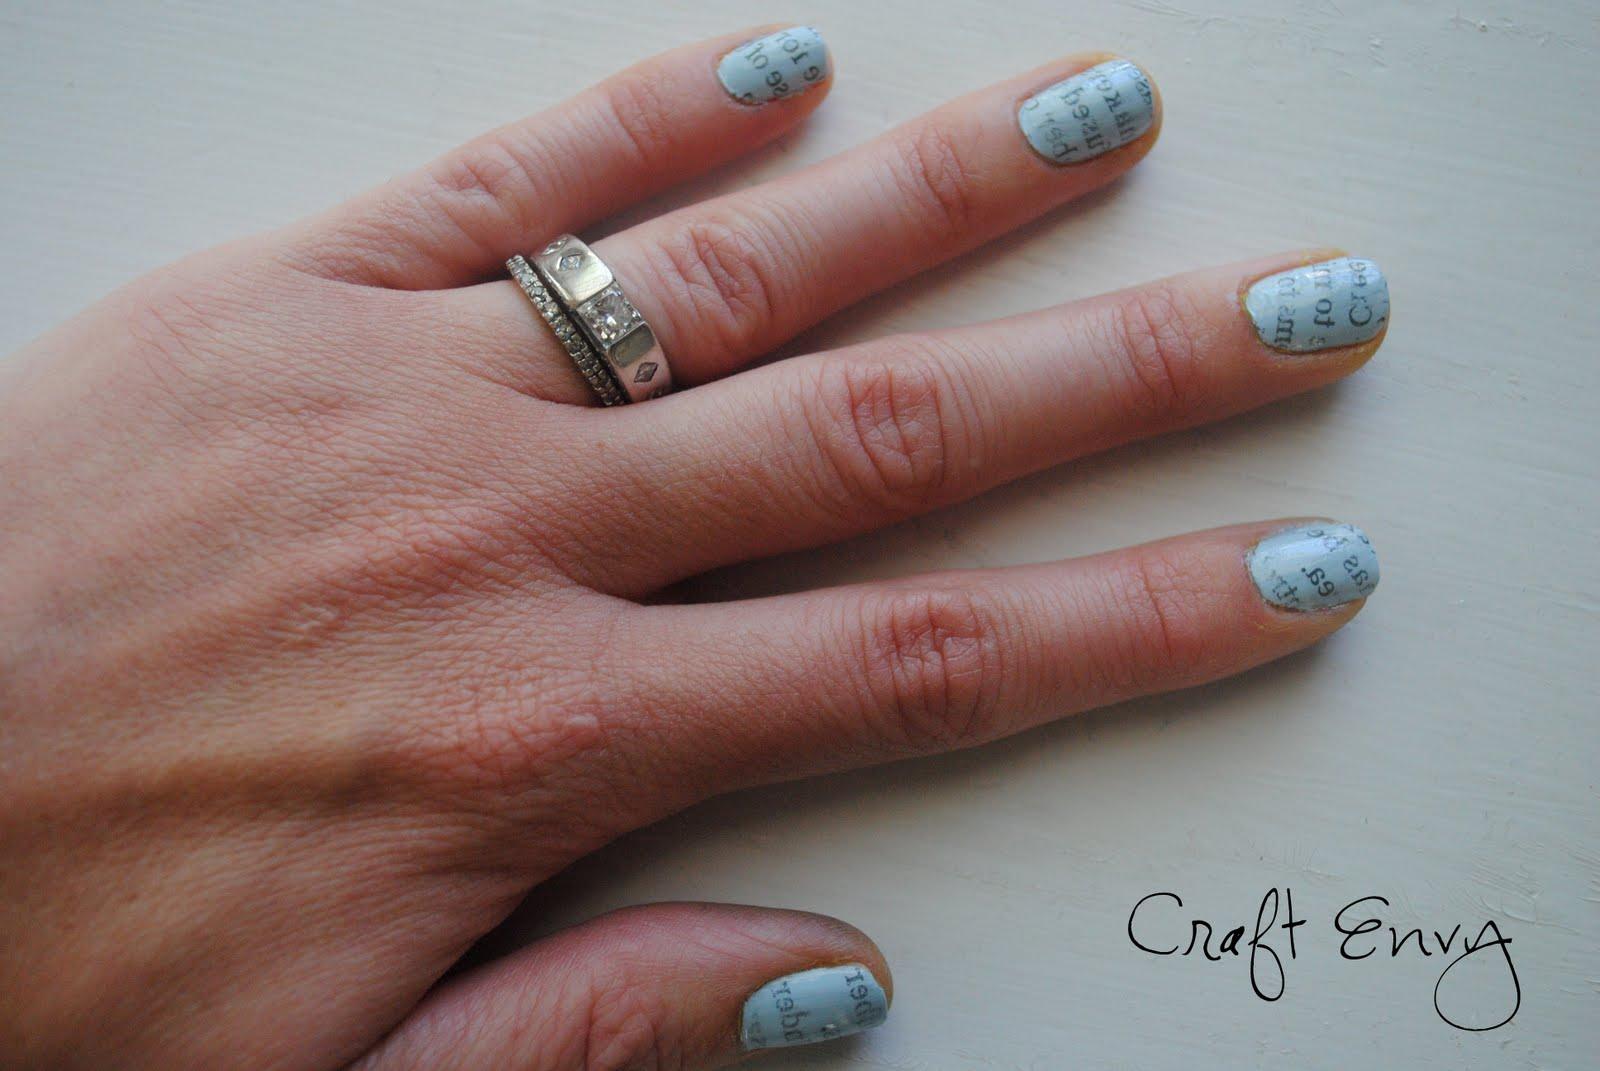 Craft Envy: Newspaper Nails